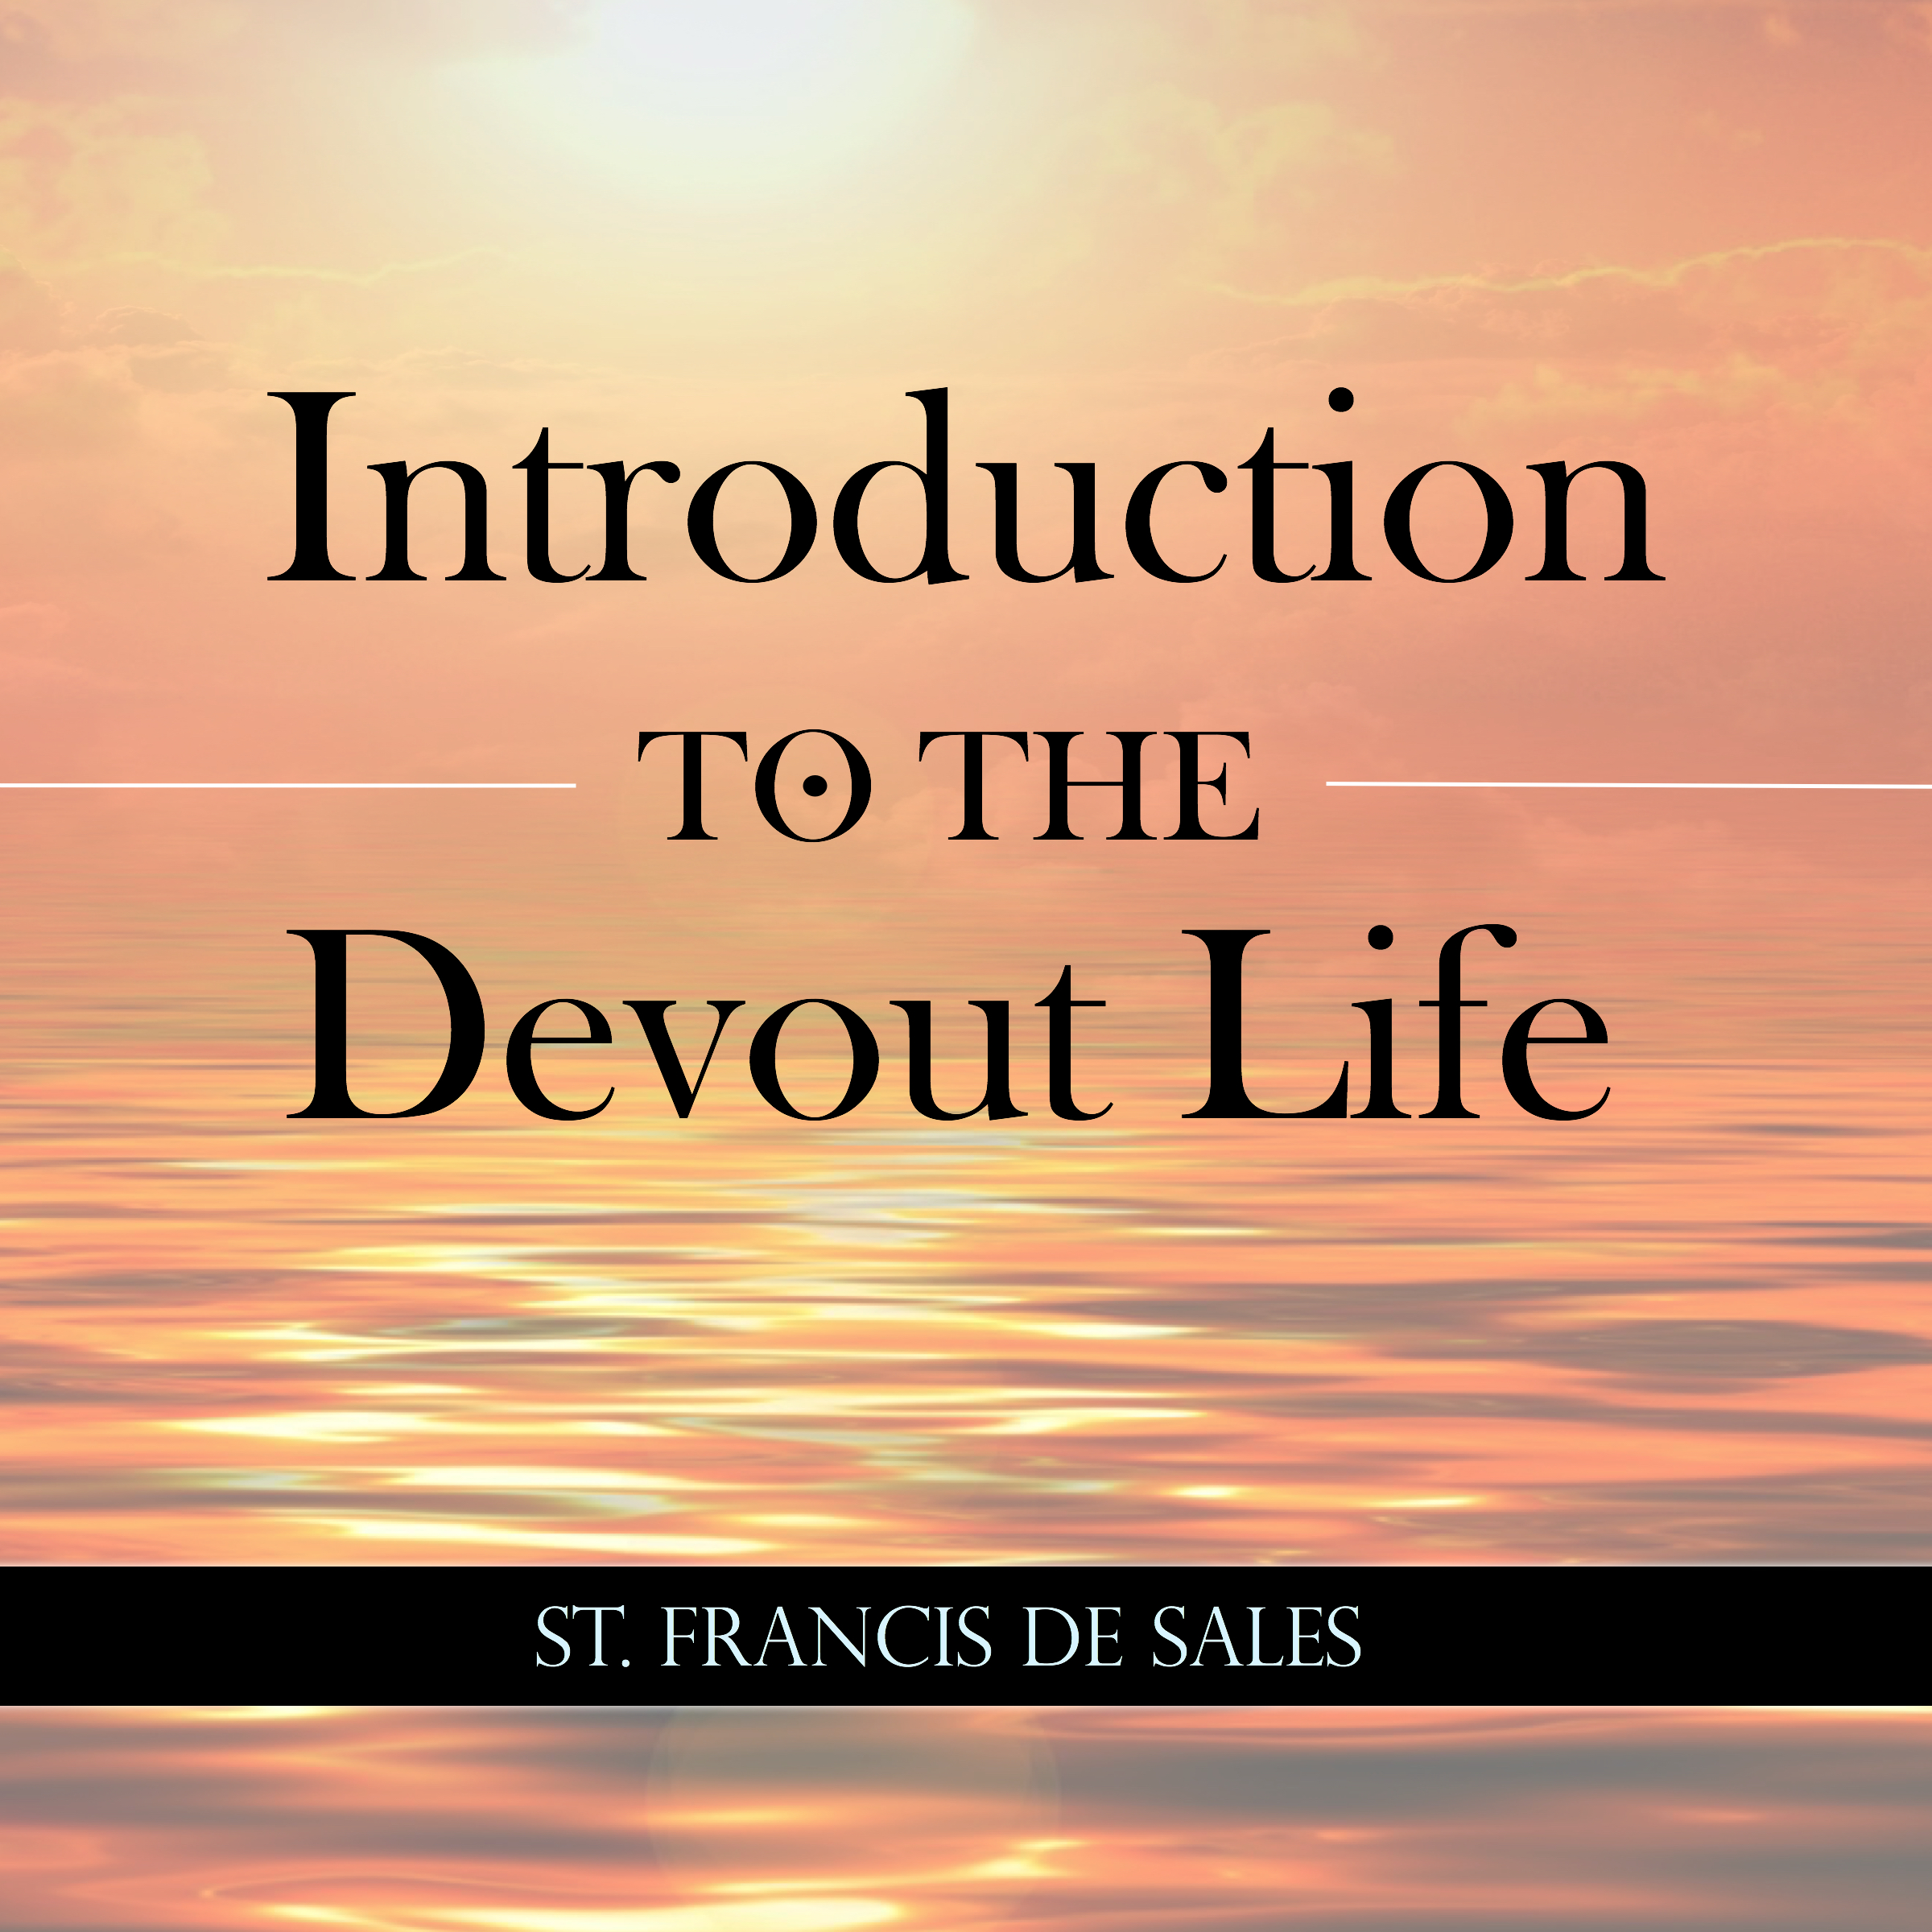 JPEG Audiobook (Introduction to the Devout Life) copy.jpg